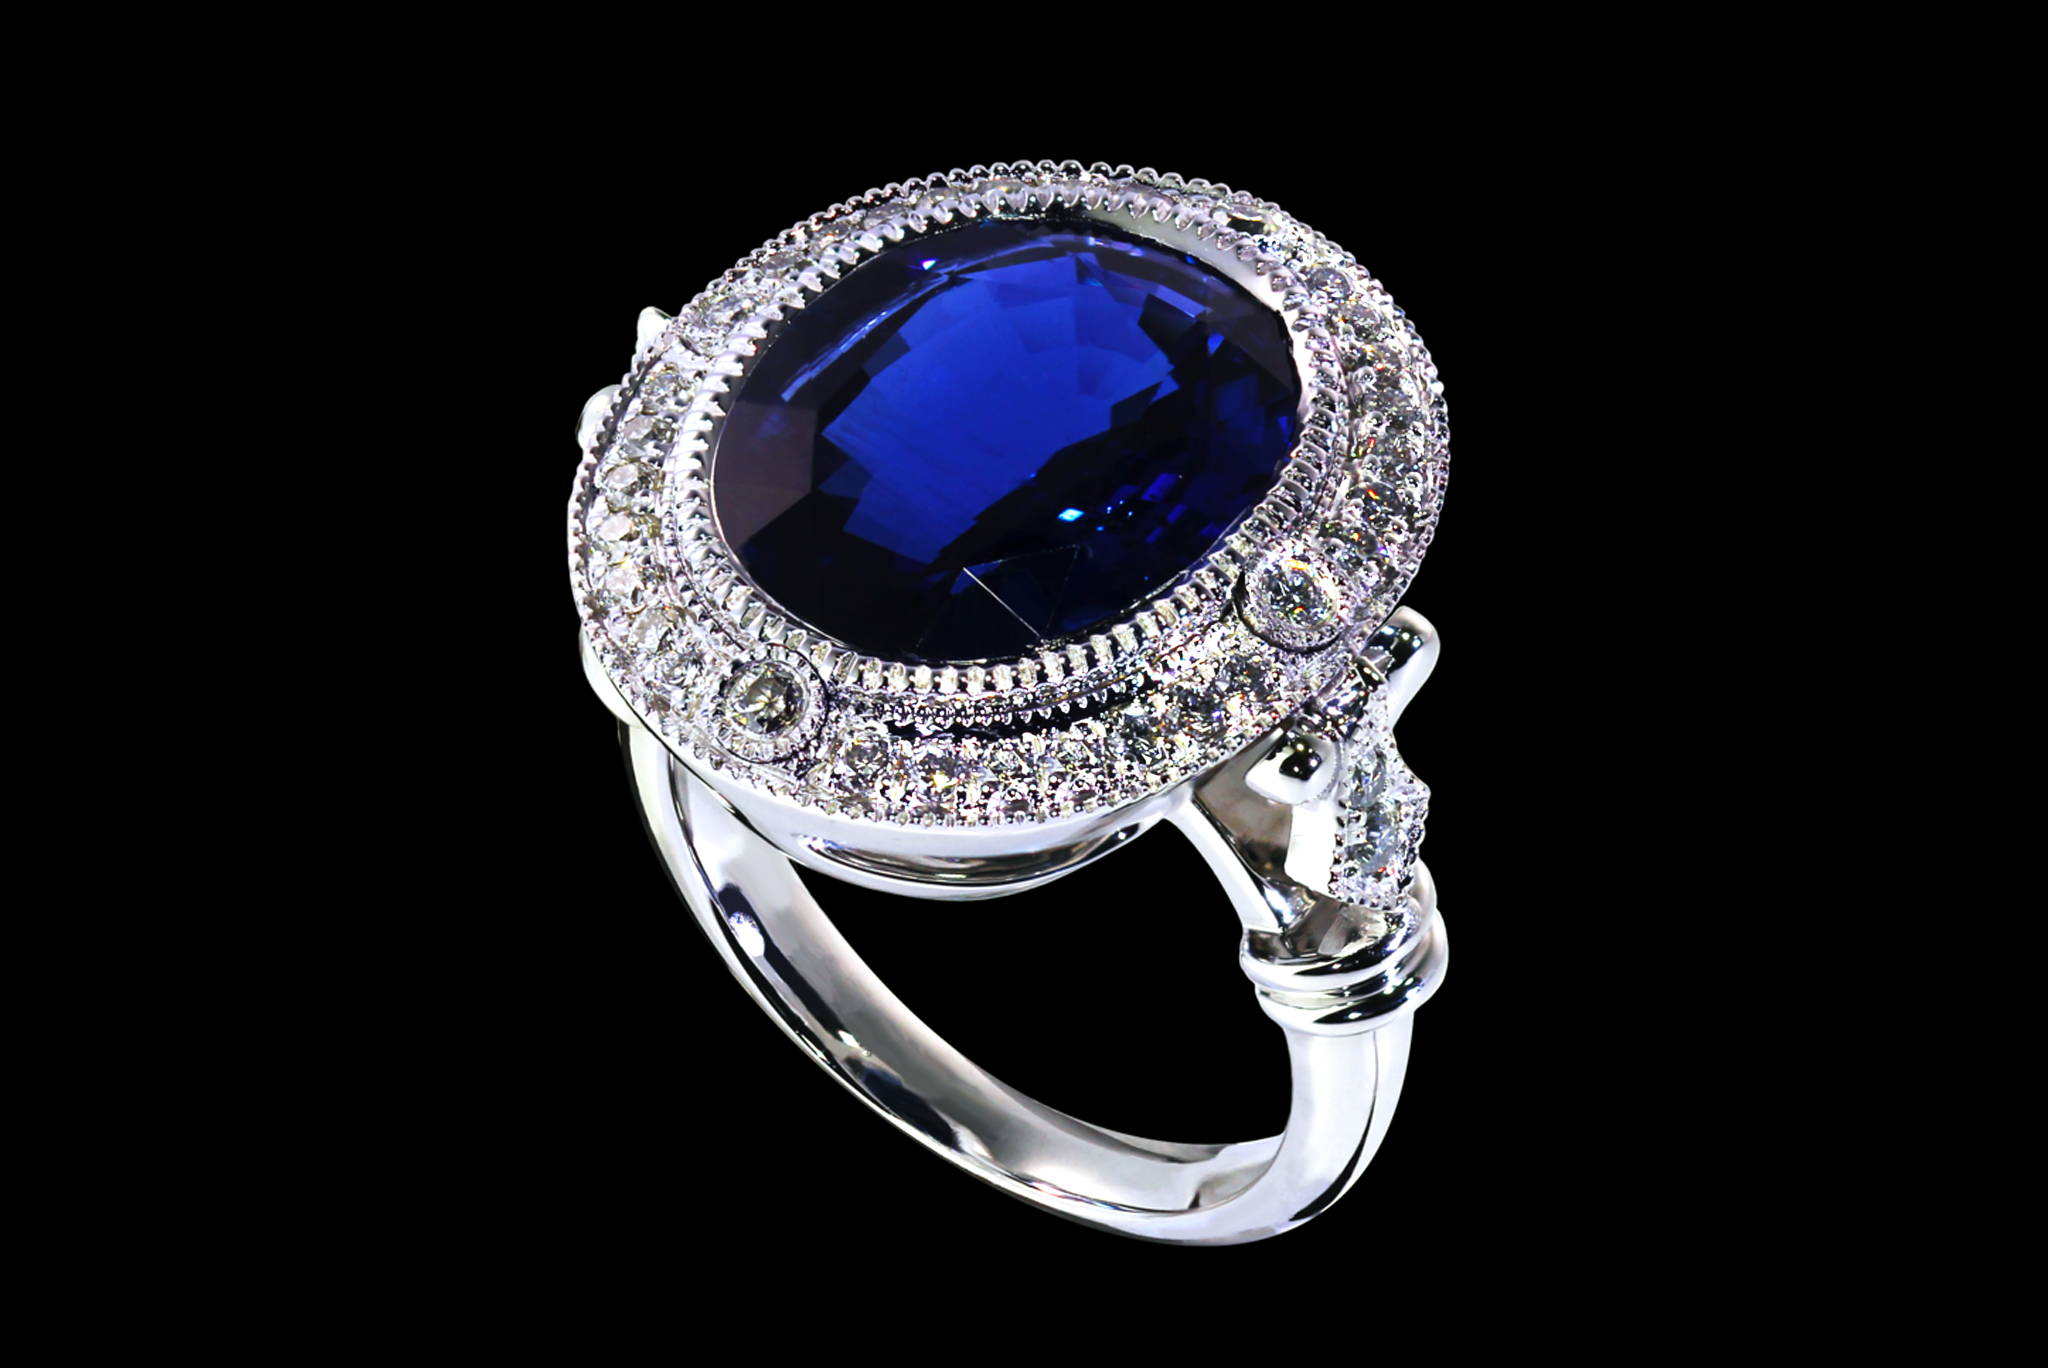 Deep Blue Sea Ring 45 degrees view